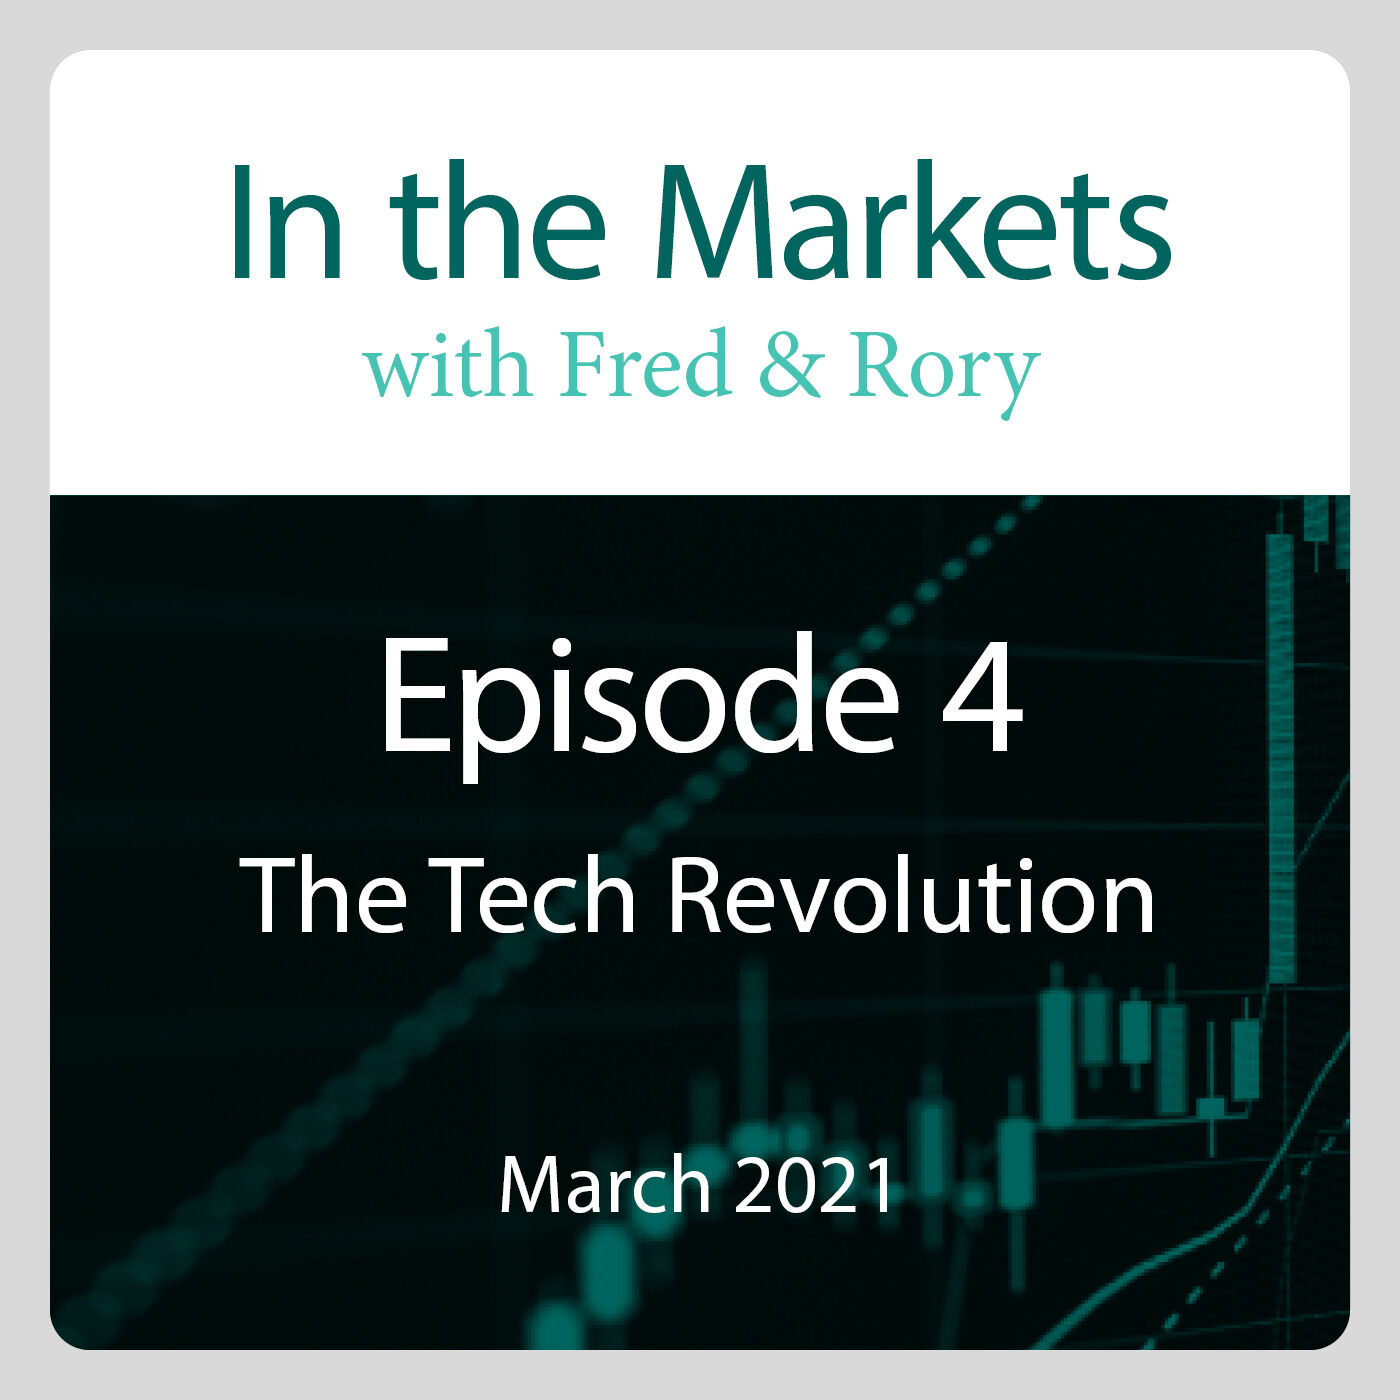 March 2021: James Anderson & the Tech Revolution